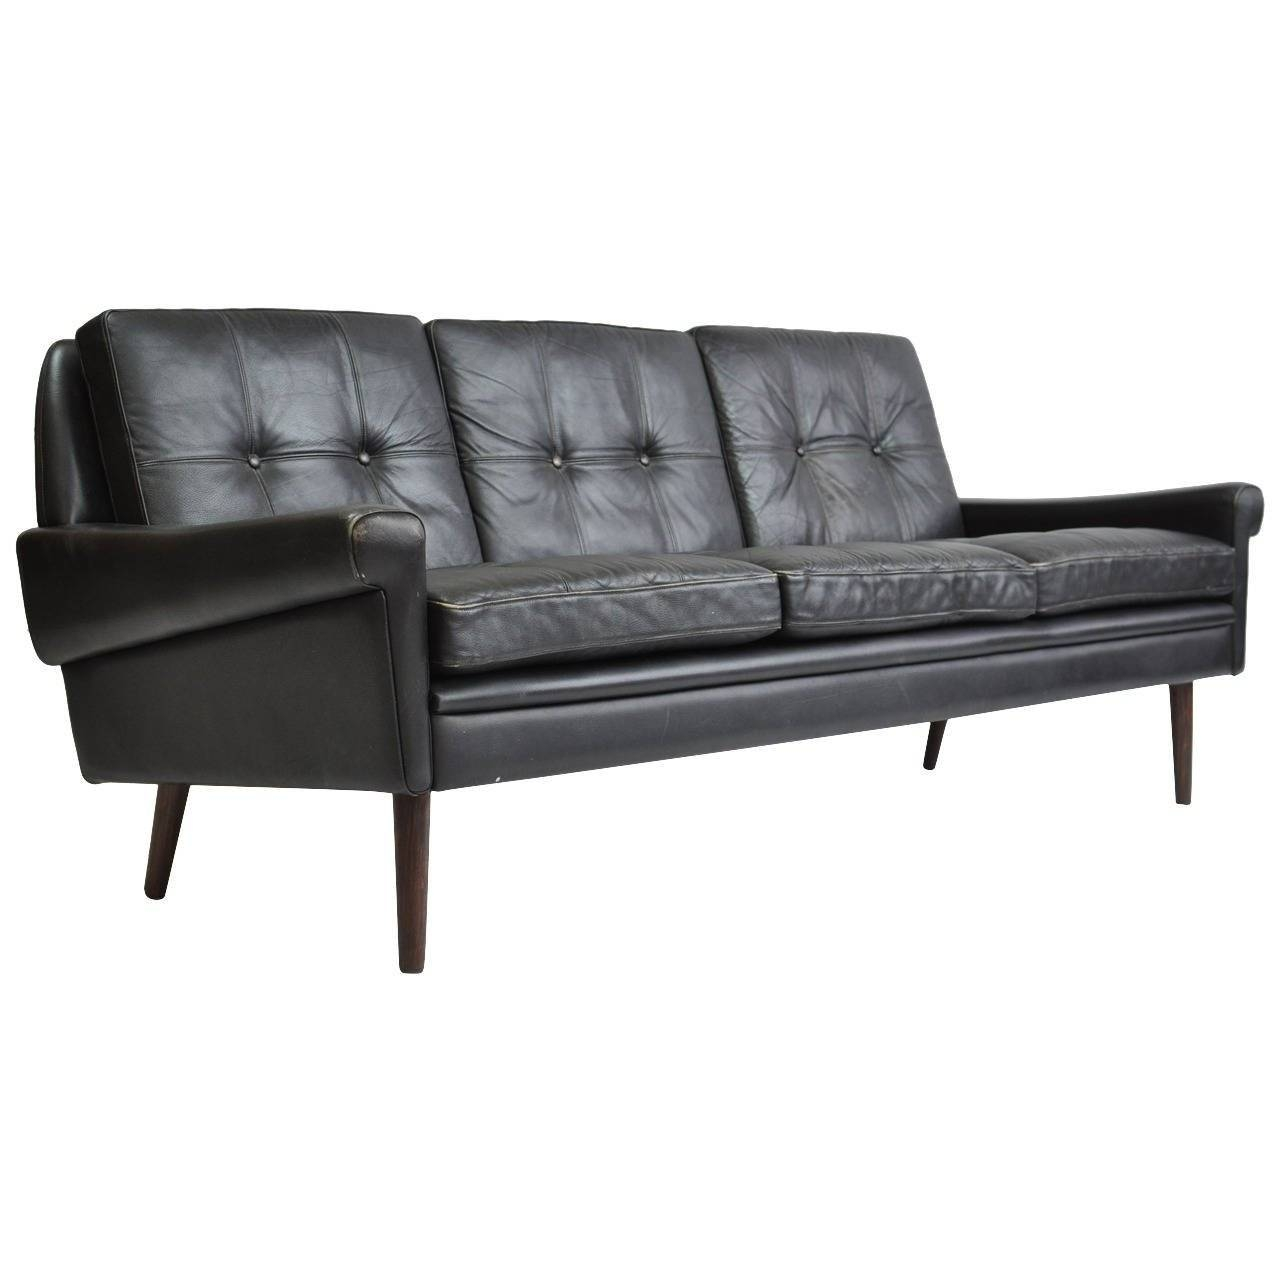 Danish Leather Sofasvend Skipper At 1Stdibs with Danish Leather Sofas (Image 9 of 15)